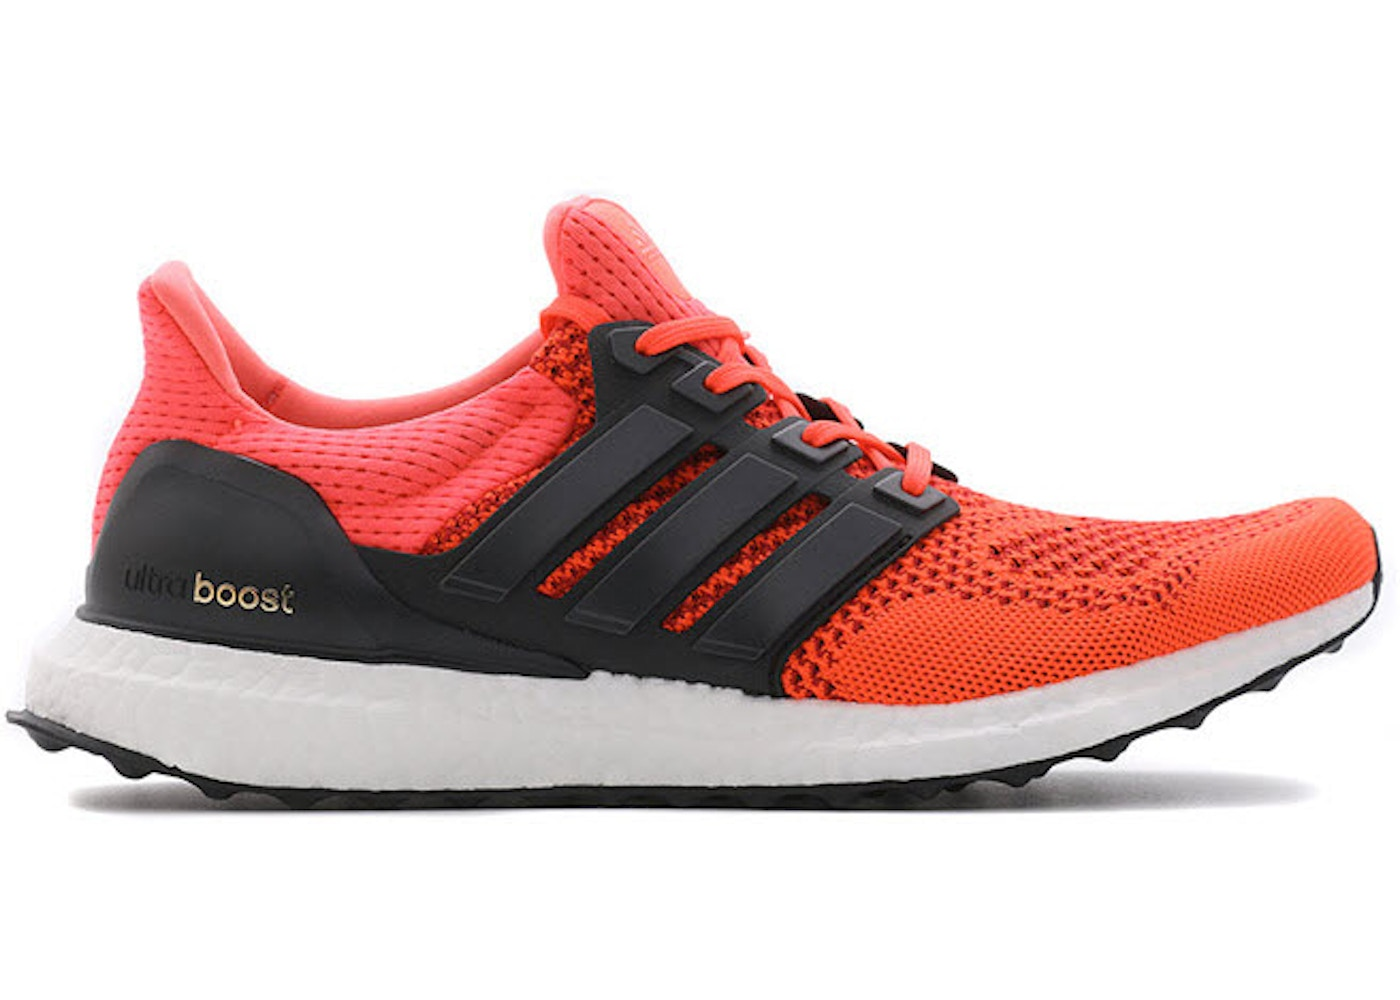 358a7418f3f7 adidas Ultra Boost Size 10 Shoes - Average Sale Price